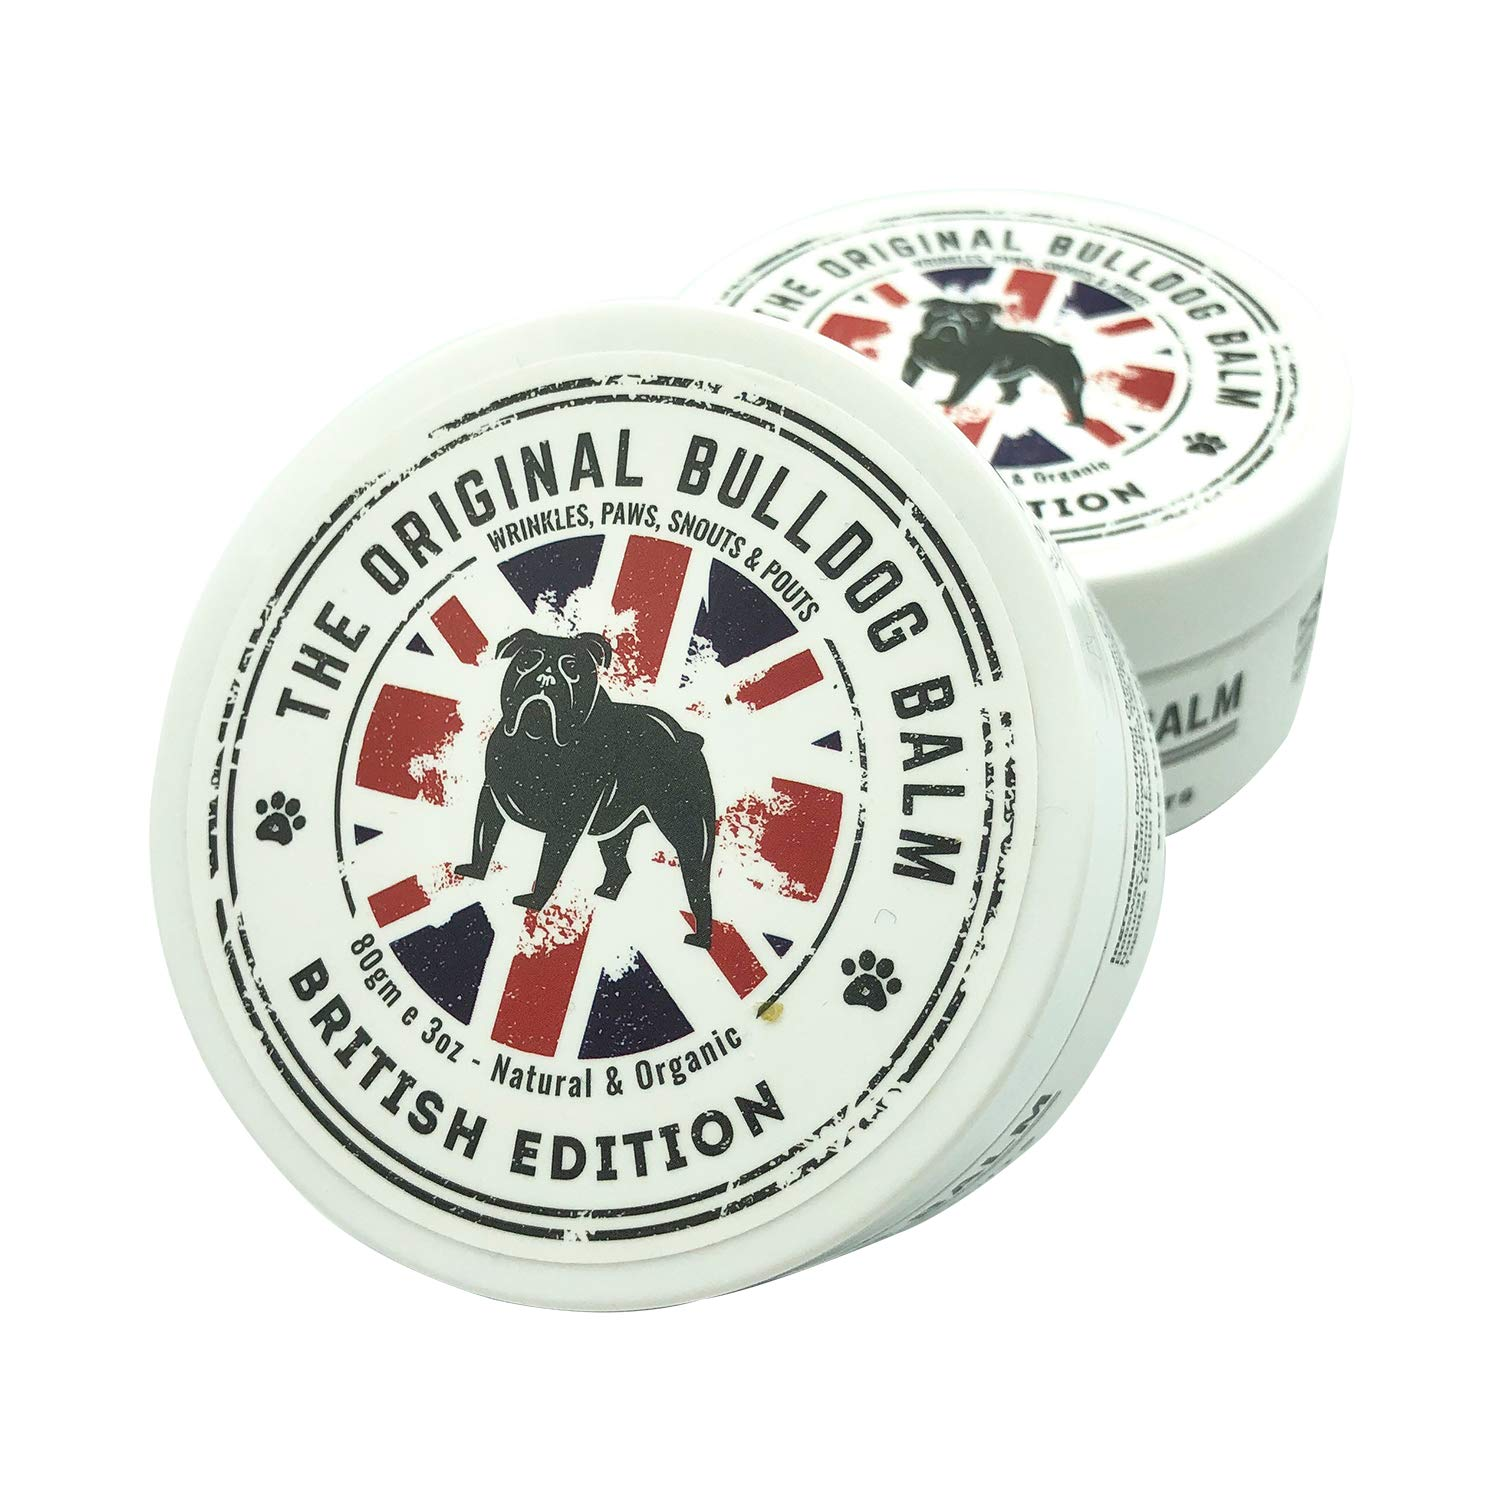 The Original Bulldog Balm British Edition | Formulated for All Breeds | Lick Safe | Healing and Soothing | Keeps Snouts and Pouts Beautiful | Paw Soother | Protects Wrinkles | Natural and Organic by The Original Bulldog Balm